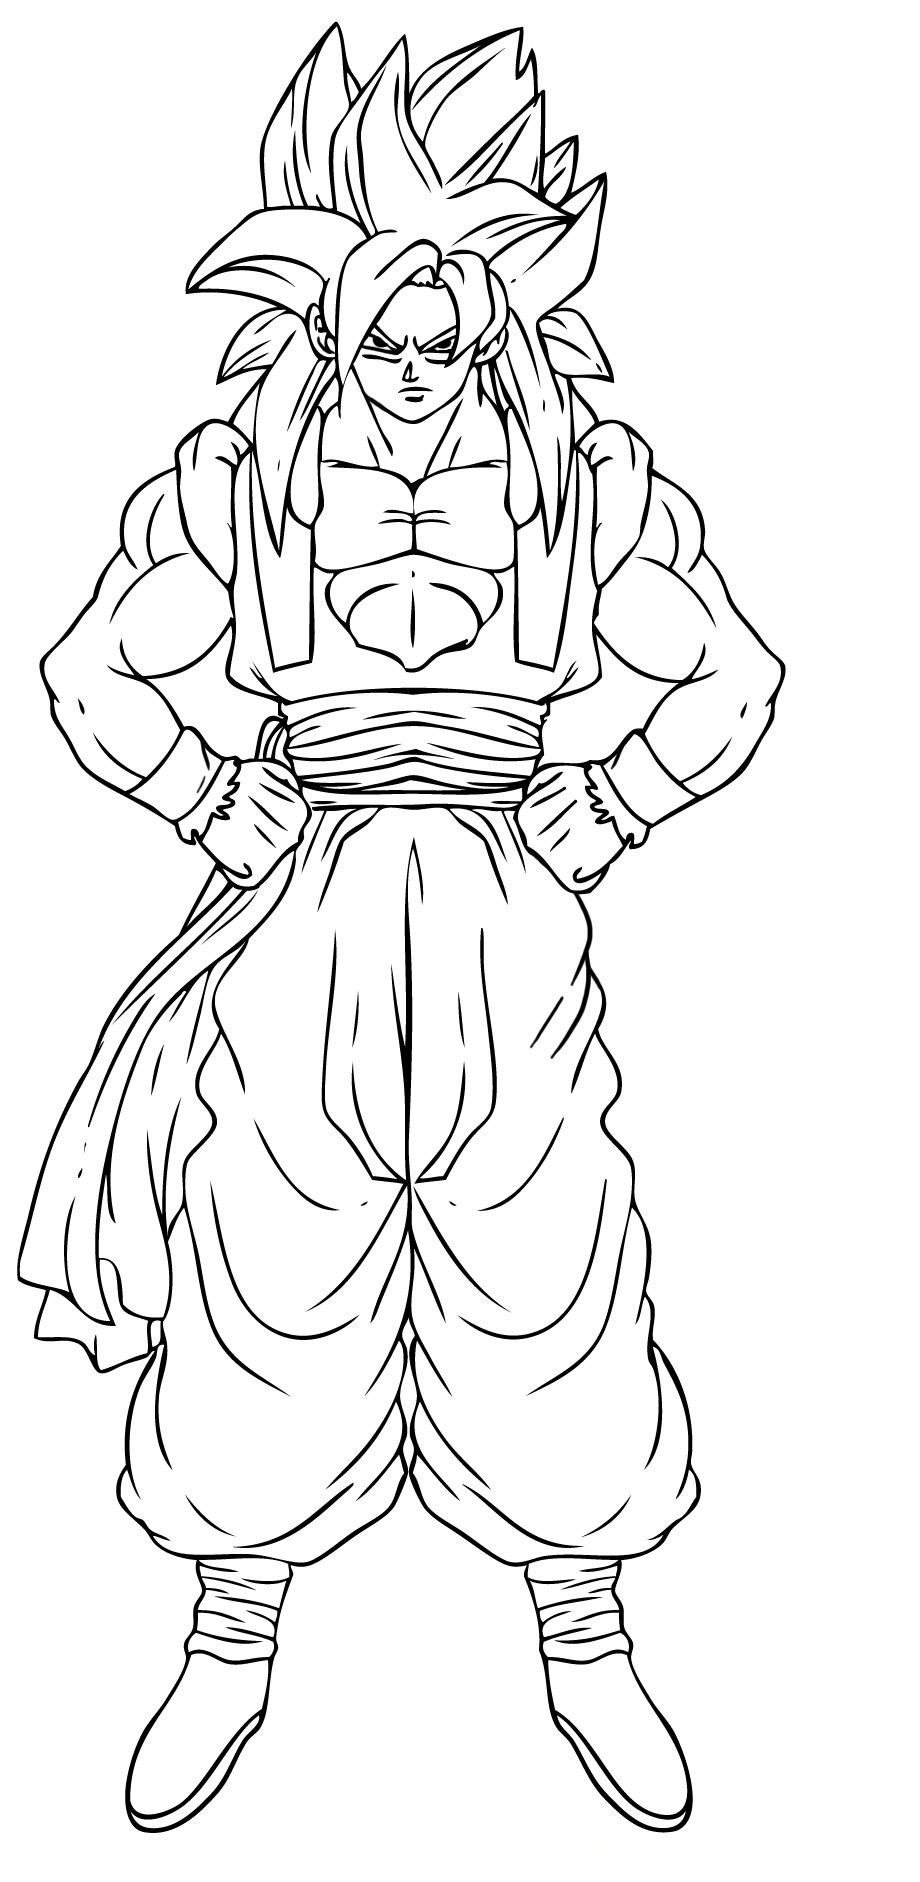 goku pictures to print goku coloring pages to download and print for free goku to print pictures